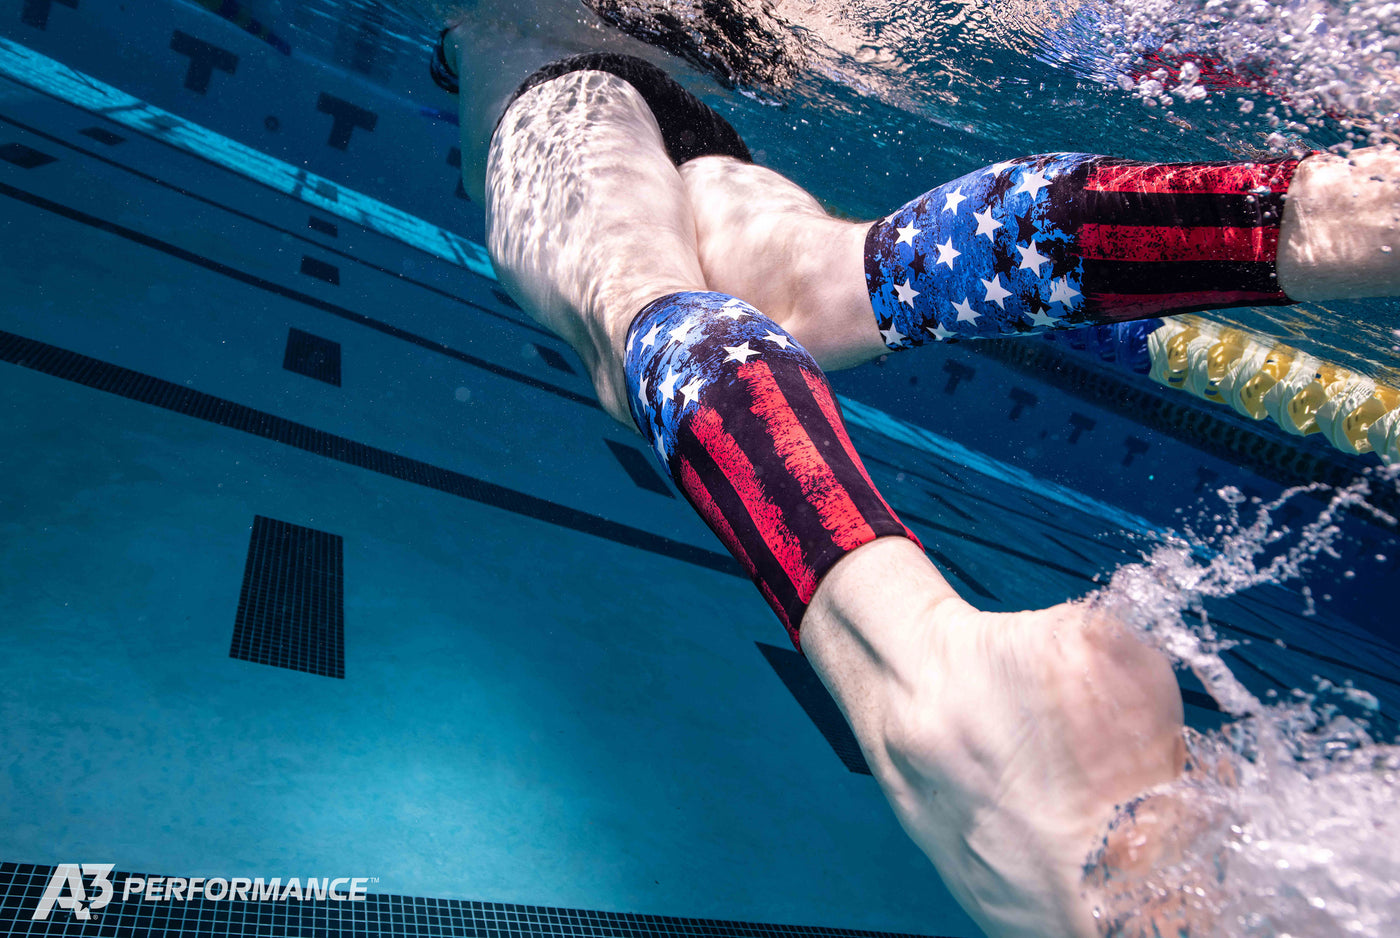 Swimming Muscle Cramps Types Causes Prevention And Treatment A3 Performance